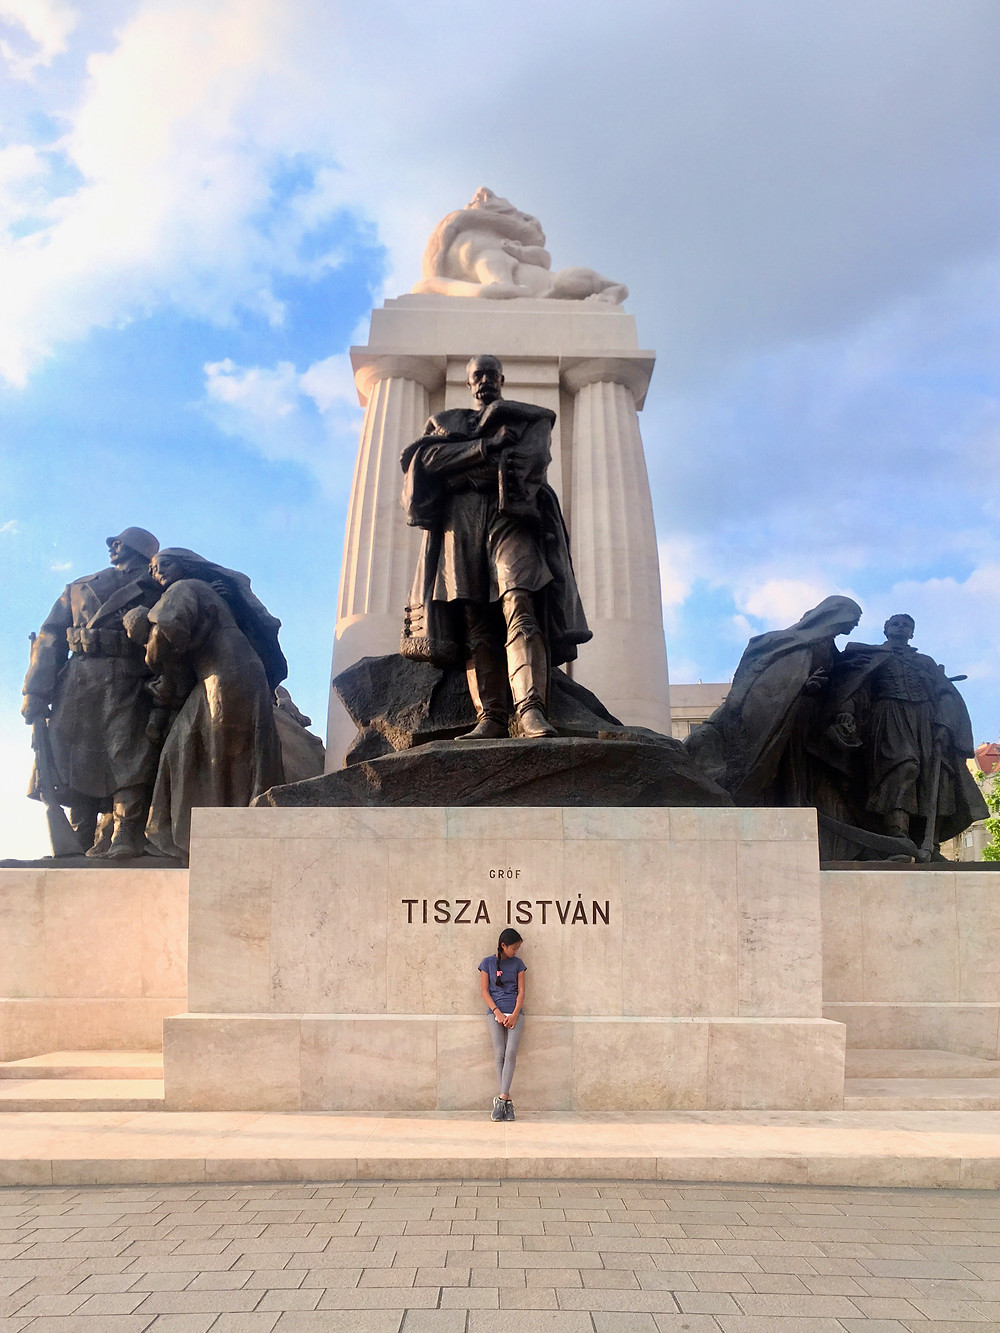 Eryn standing beneath the István Tisza Monument near the Hungarian Parliament Building under partly cloudy skies in Budapest